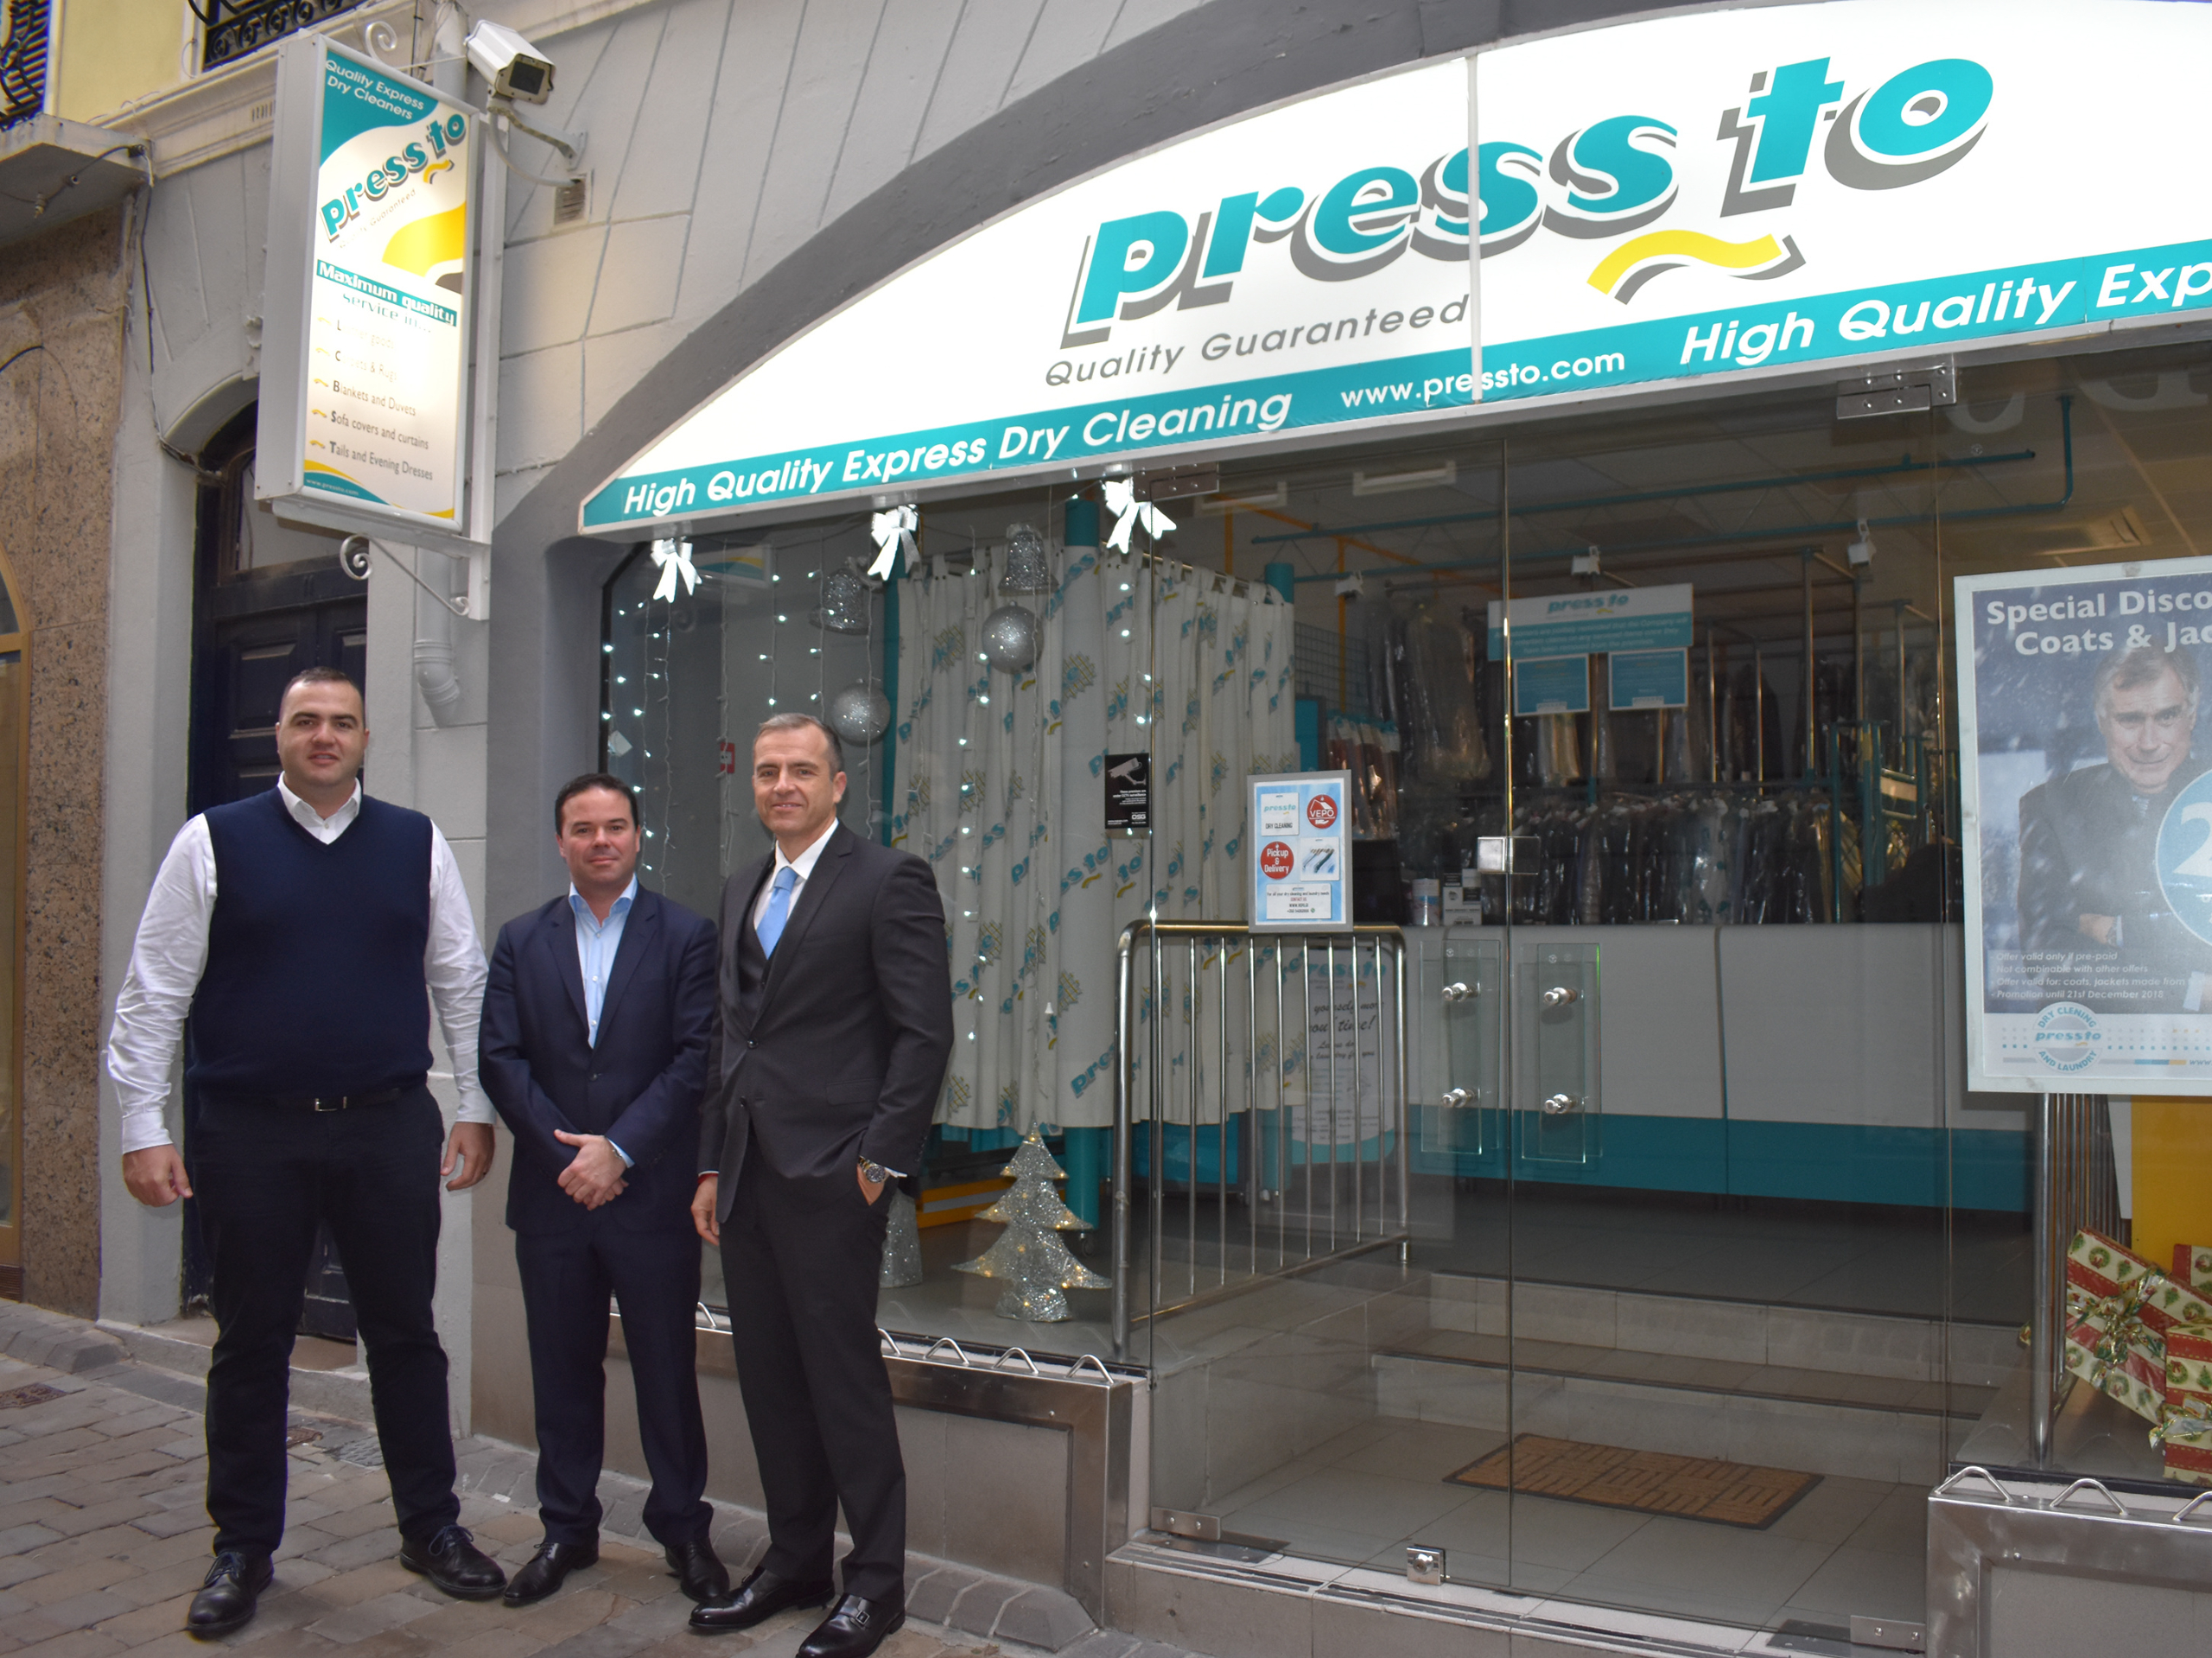 E1 attracts Gibraltar's dry cleaners, Pressto, to its new development Image